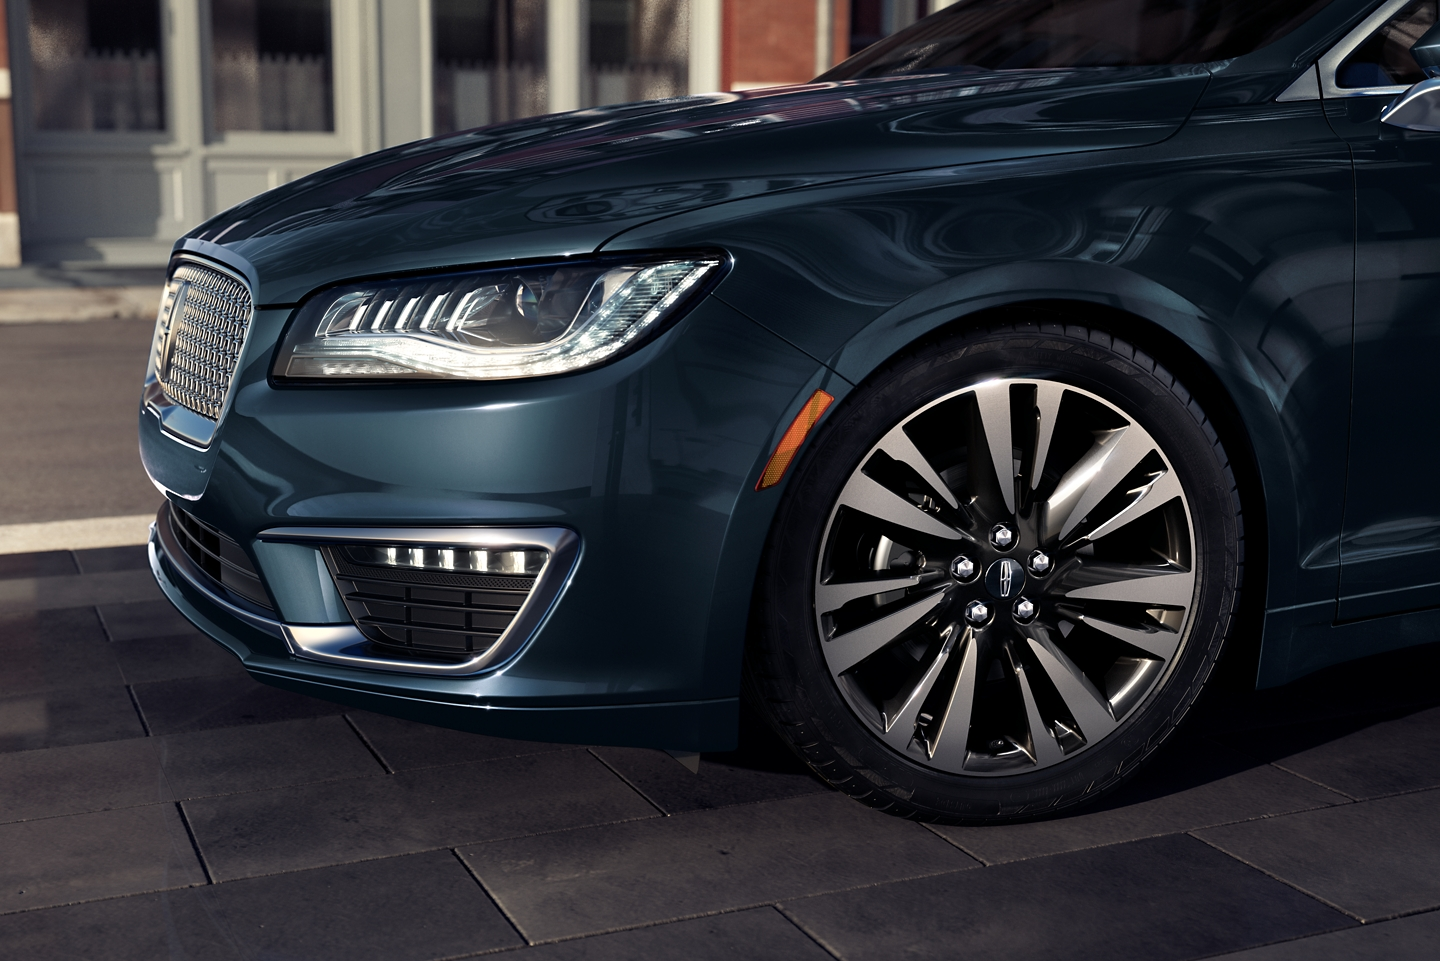 The high-performance 2020 Lincoln MKZ